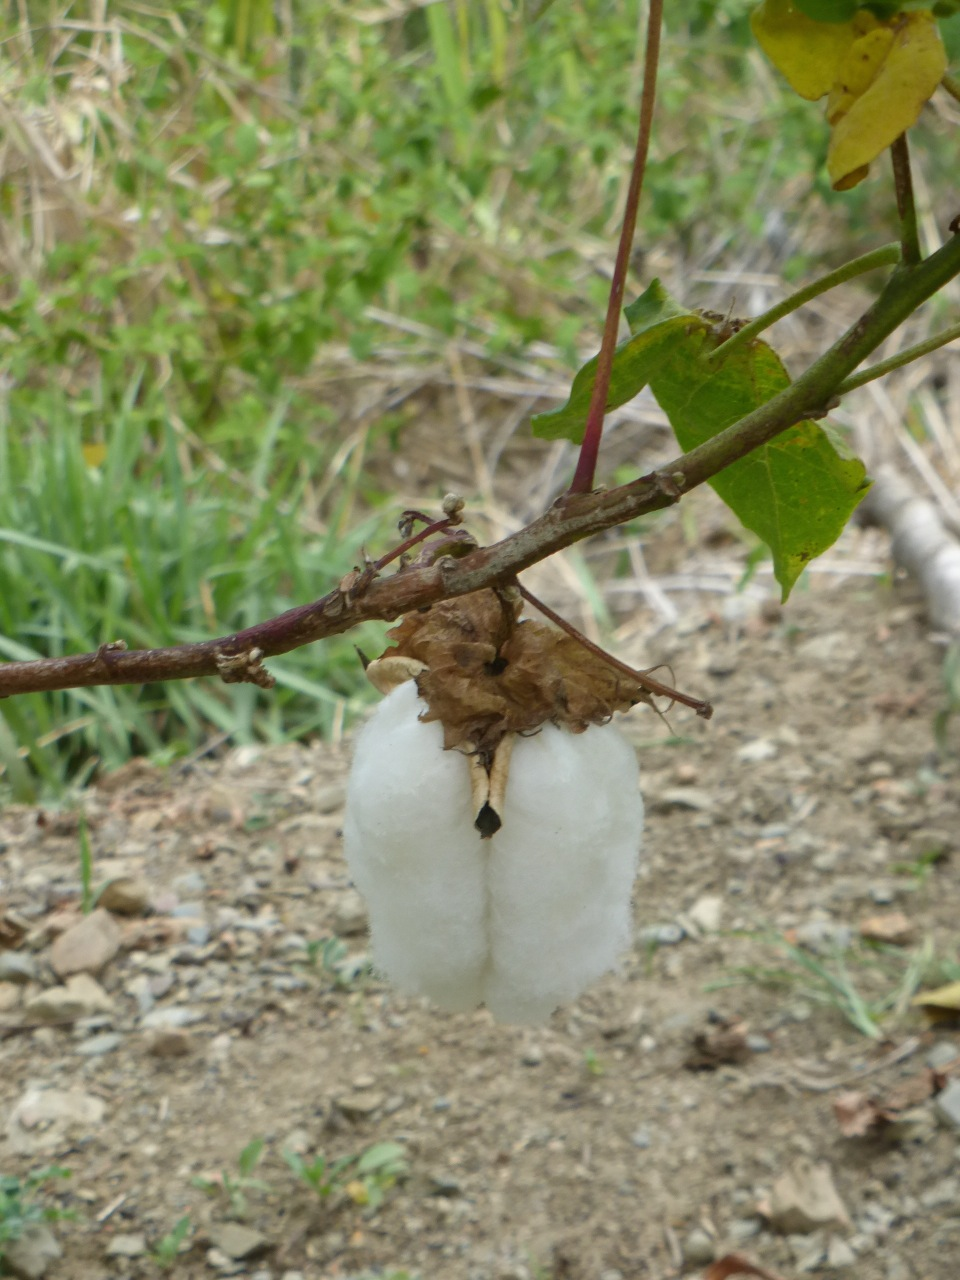 This is the Ecuadorean white cotton. It hangs down in 3 long pendulums. They call it 'bulls balls' for obvious reasons.